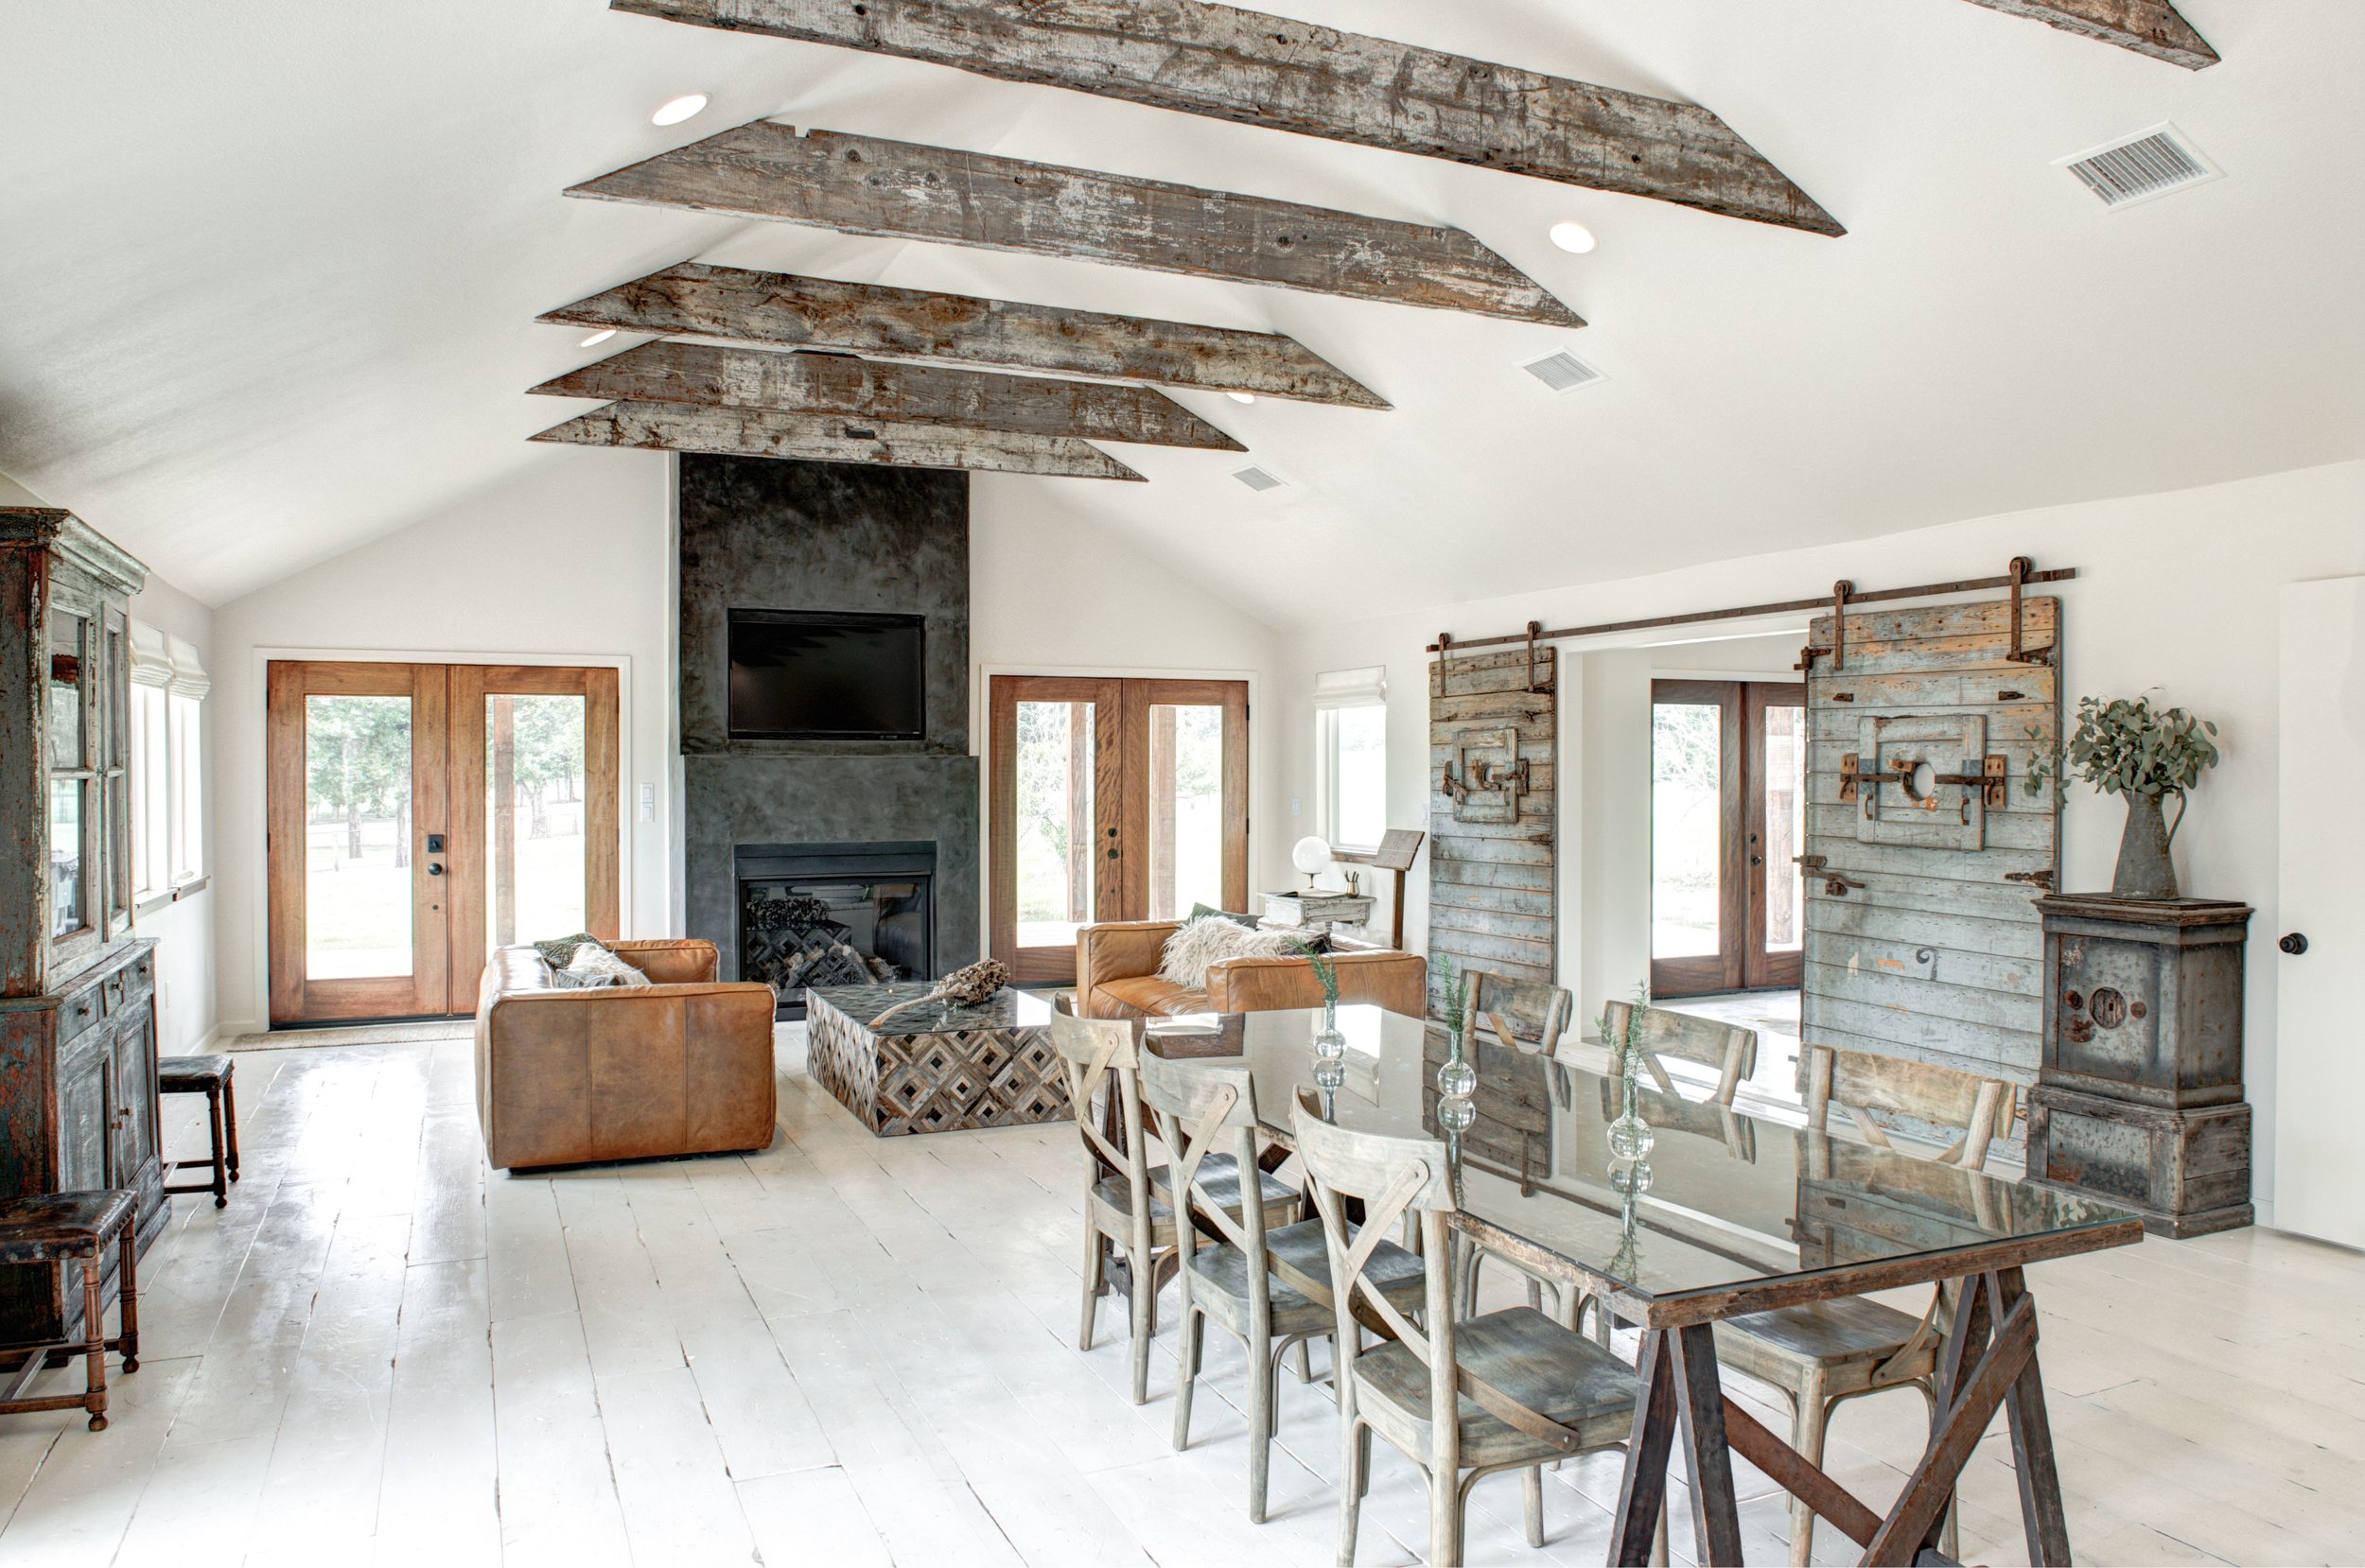 The 900-sq-ft Boho great room includes a gas fireplace and dining table for 8.